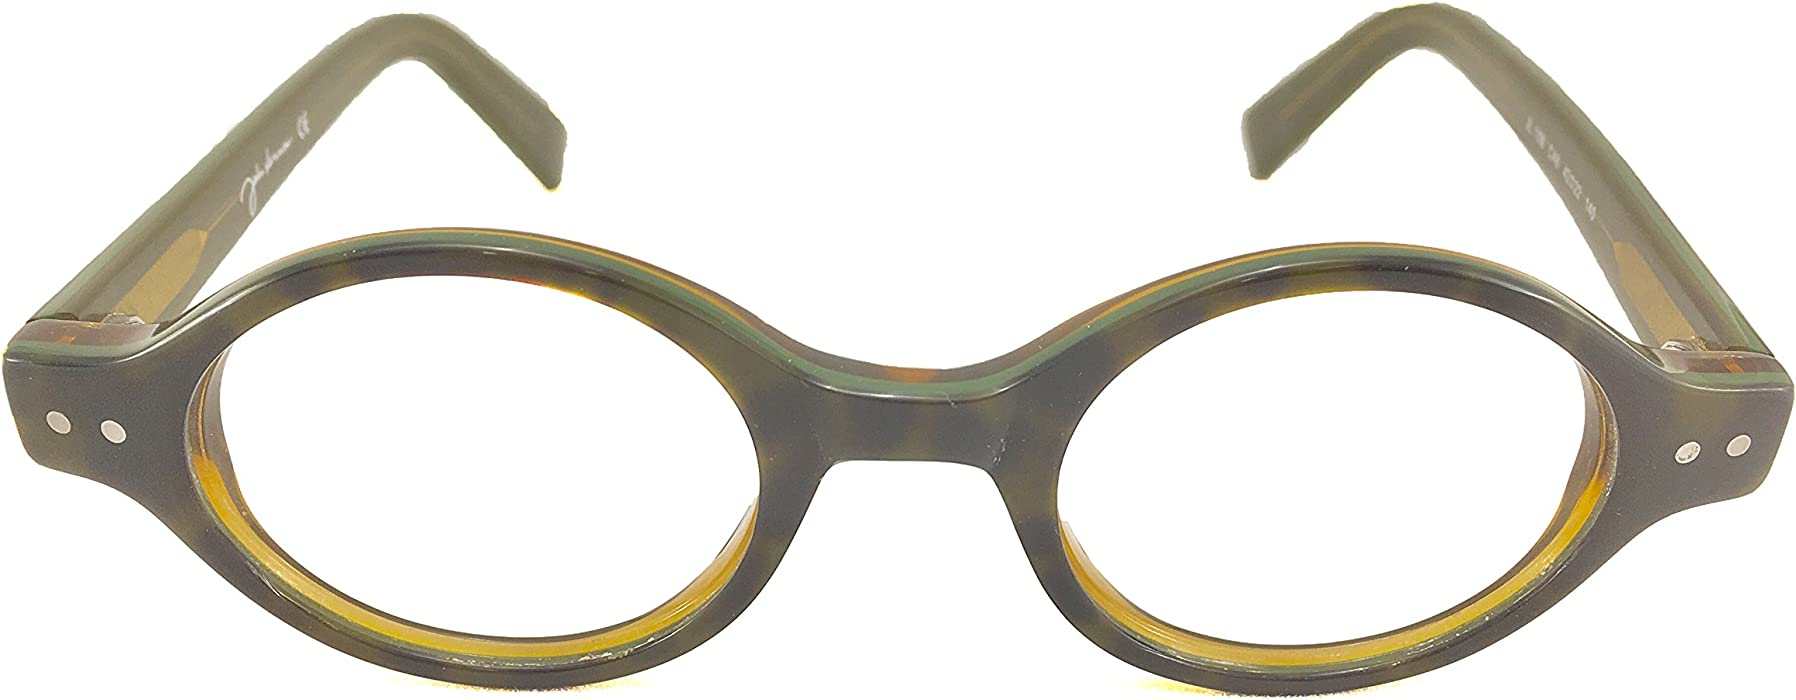 f77b43c91bd Amazon.com  John Lennon JL10 Eyeglass Frame - Black Brown  Clothing